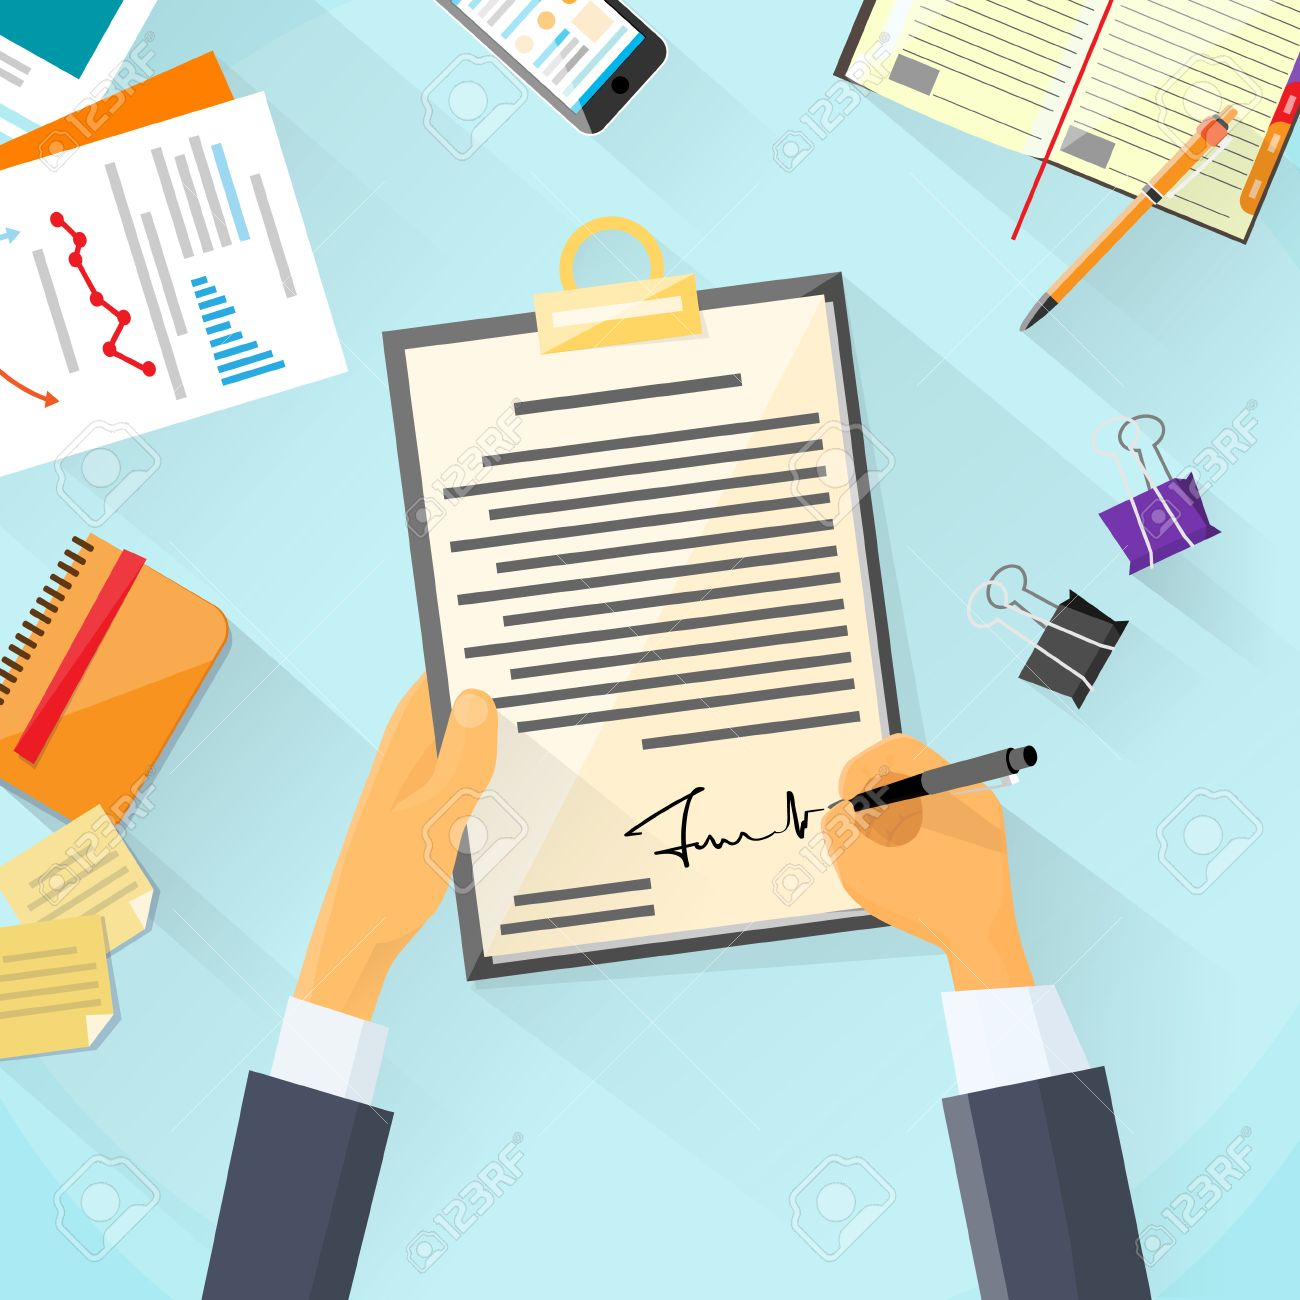 Business Man Signature Document Signing Up Contract Businessman